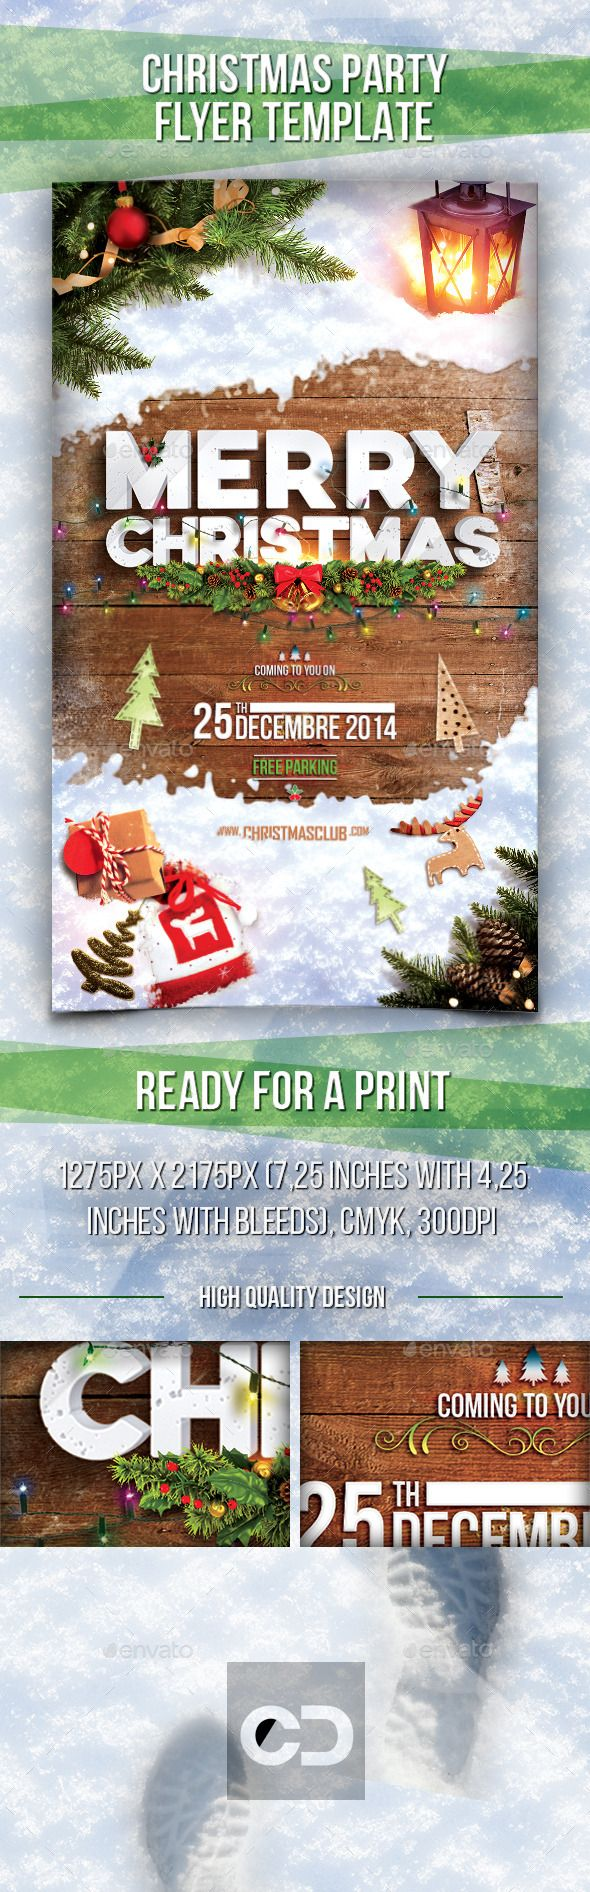 I hope you enjoy and customize this flyer for your Christmas party!